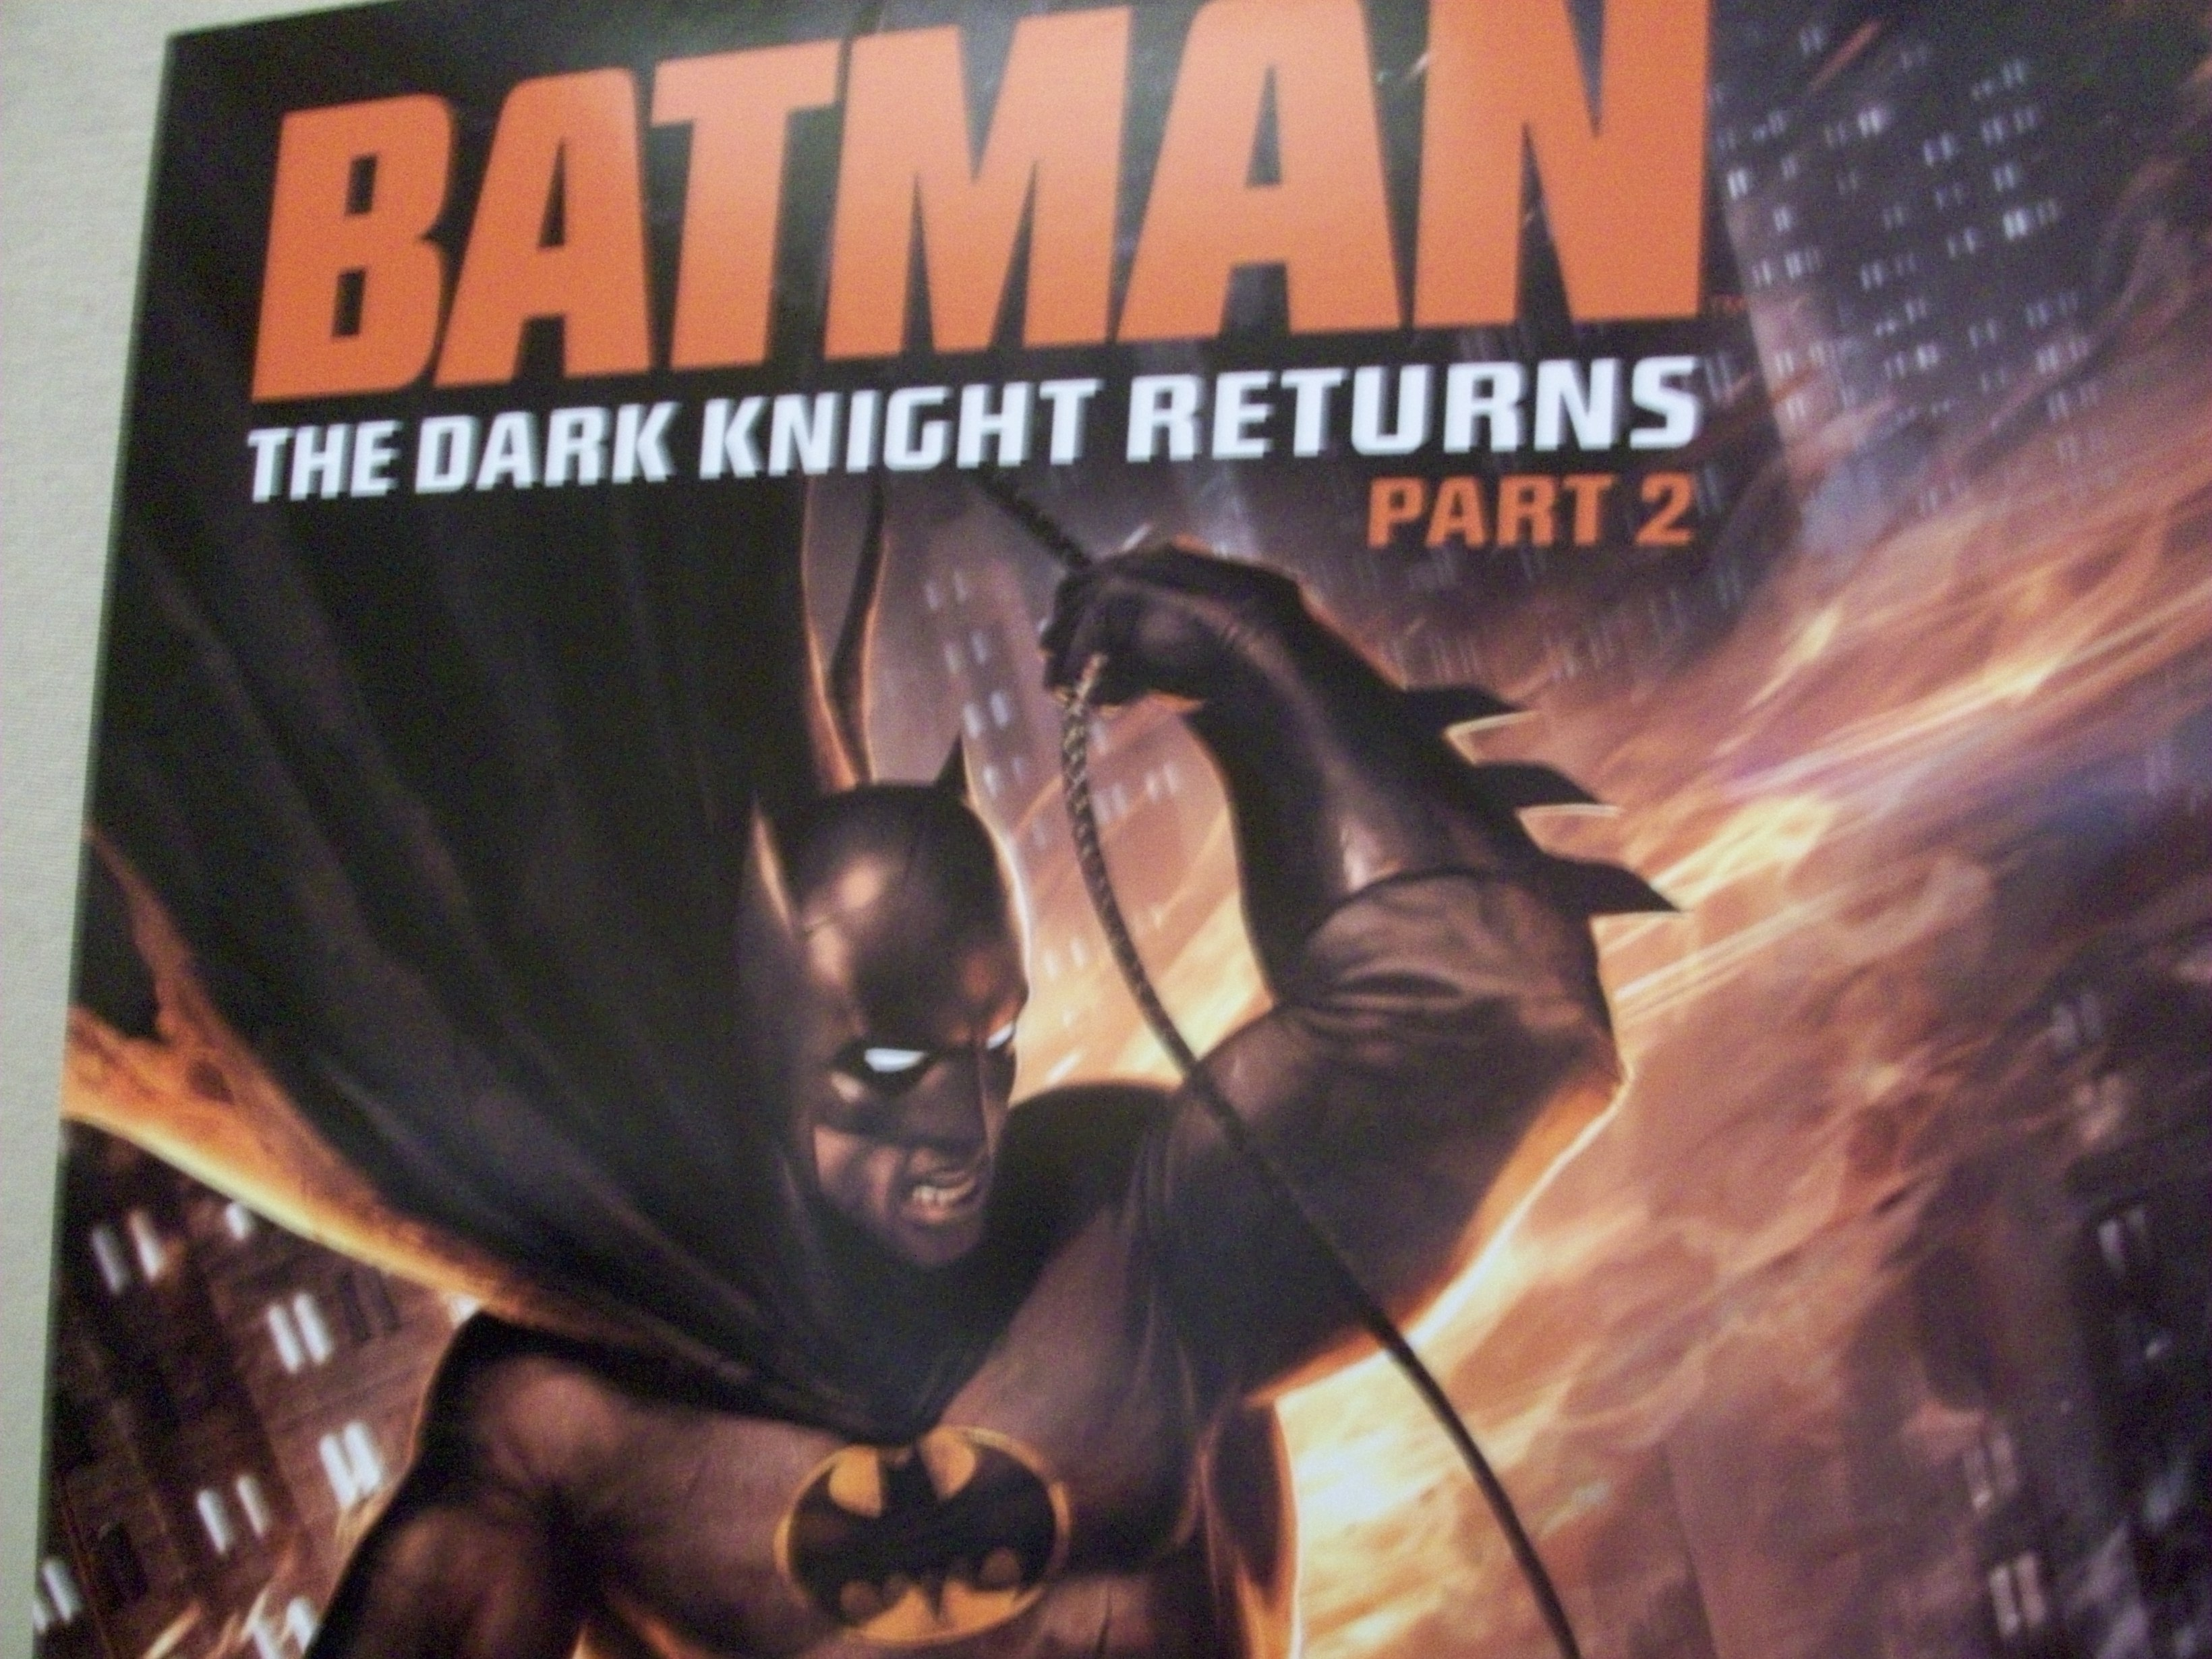 The Dark Knight Returns may be one of the most important Batman stories ever made, and it's finally finishing its animated adaptation with the release of The Dark Knight Returns:...